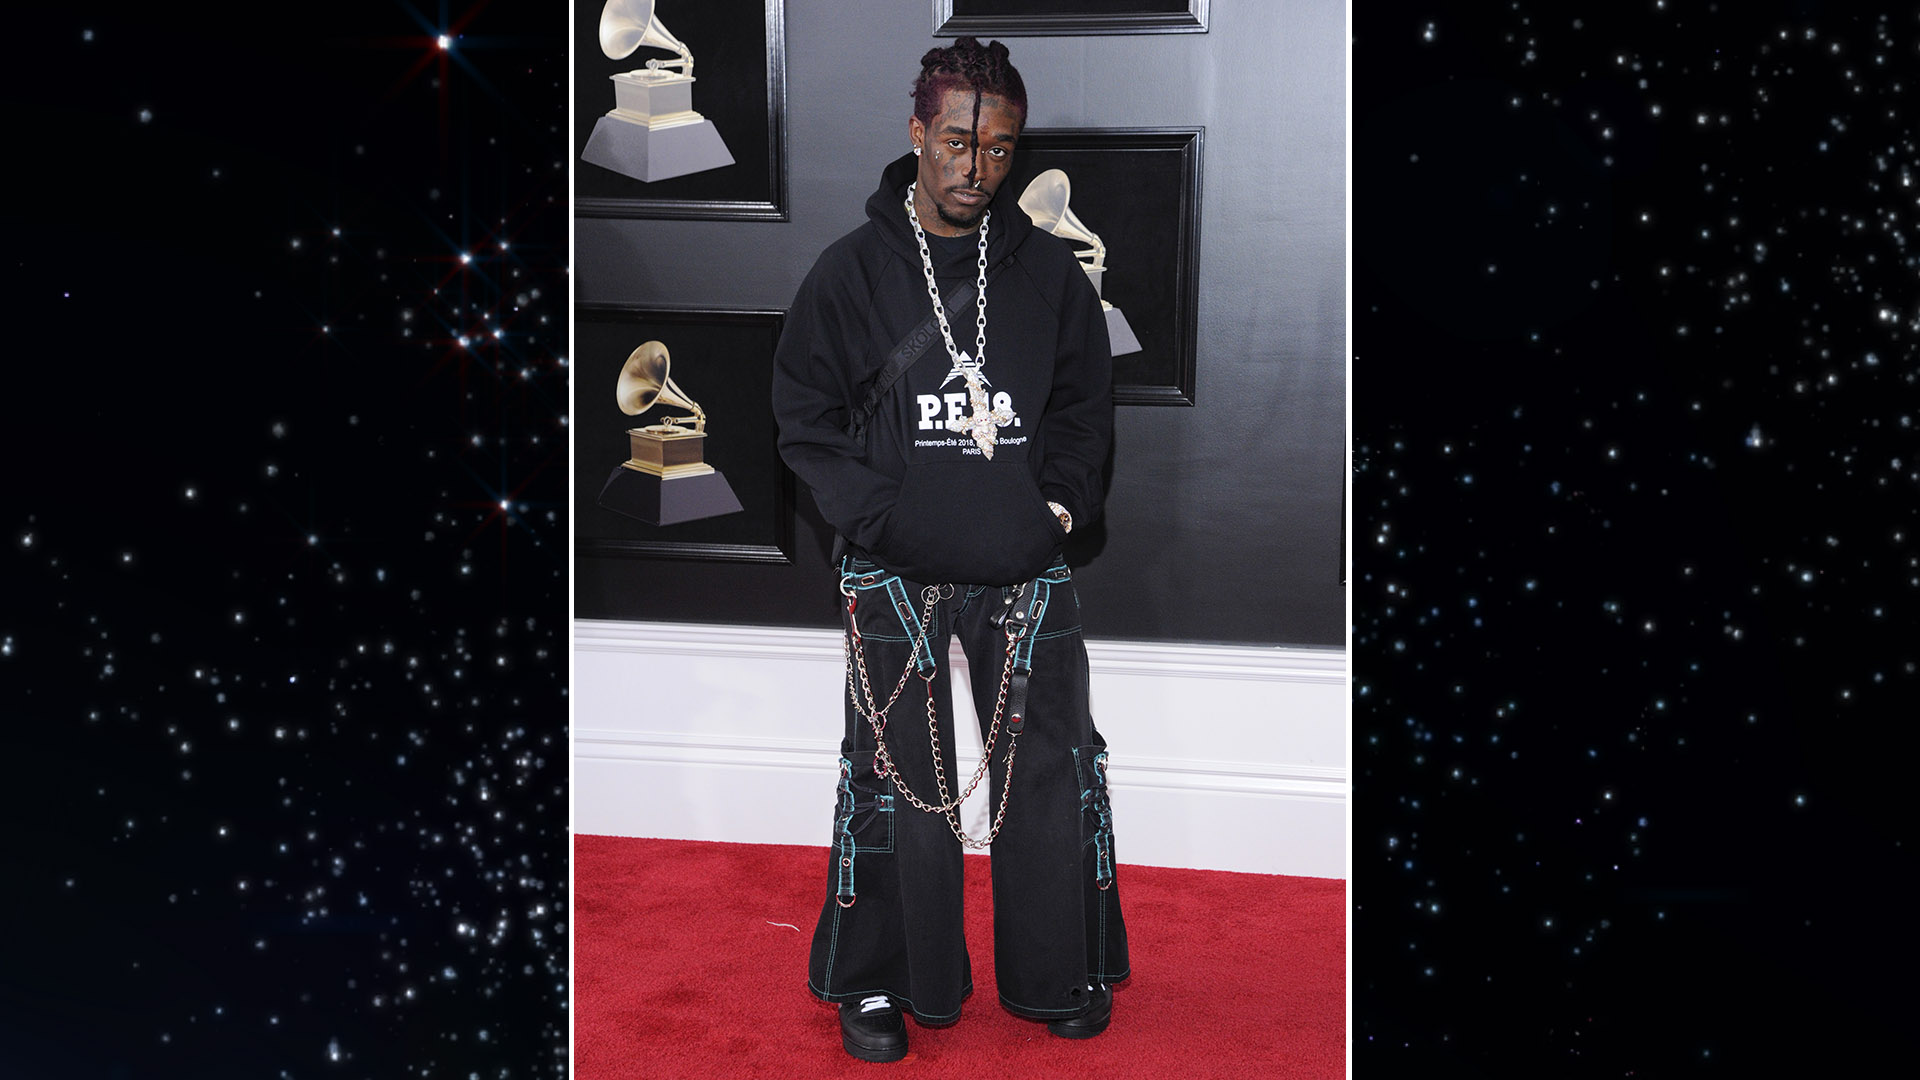 Best New Artist nominee Lil Uzi Vert gives us all sorts of '90s raver flashbacks with this wide-legged ensemble.